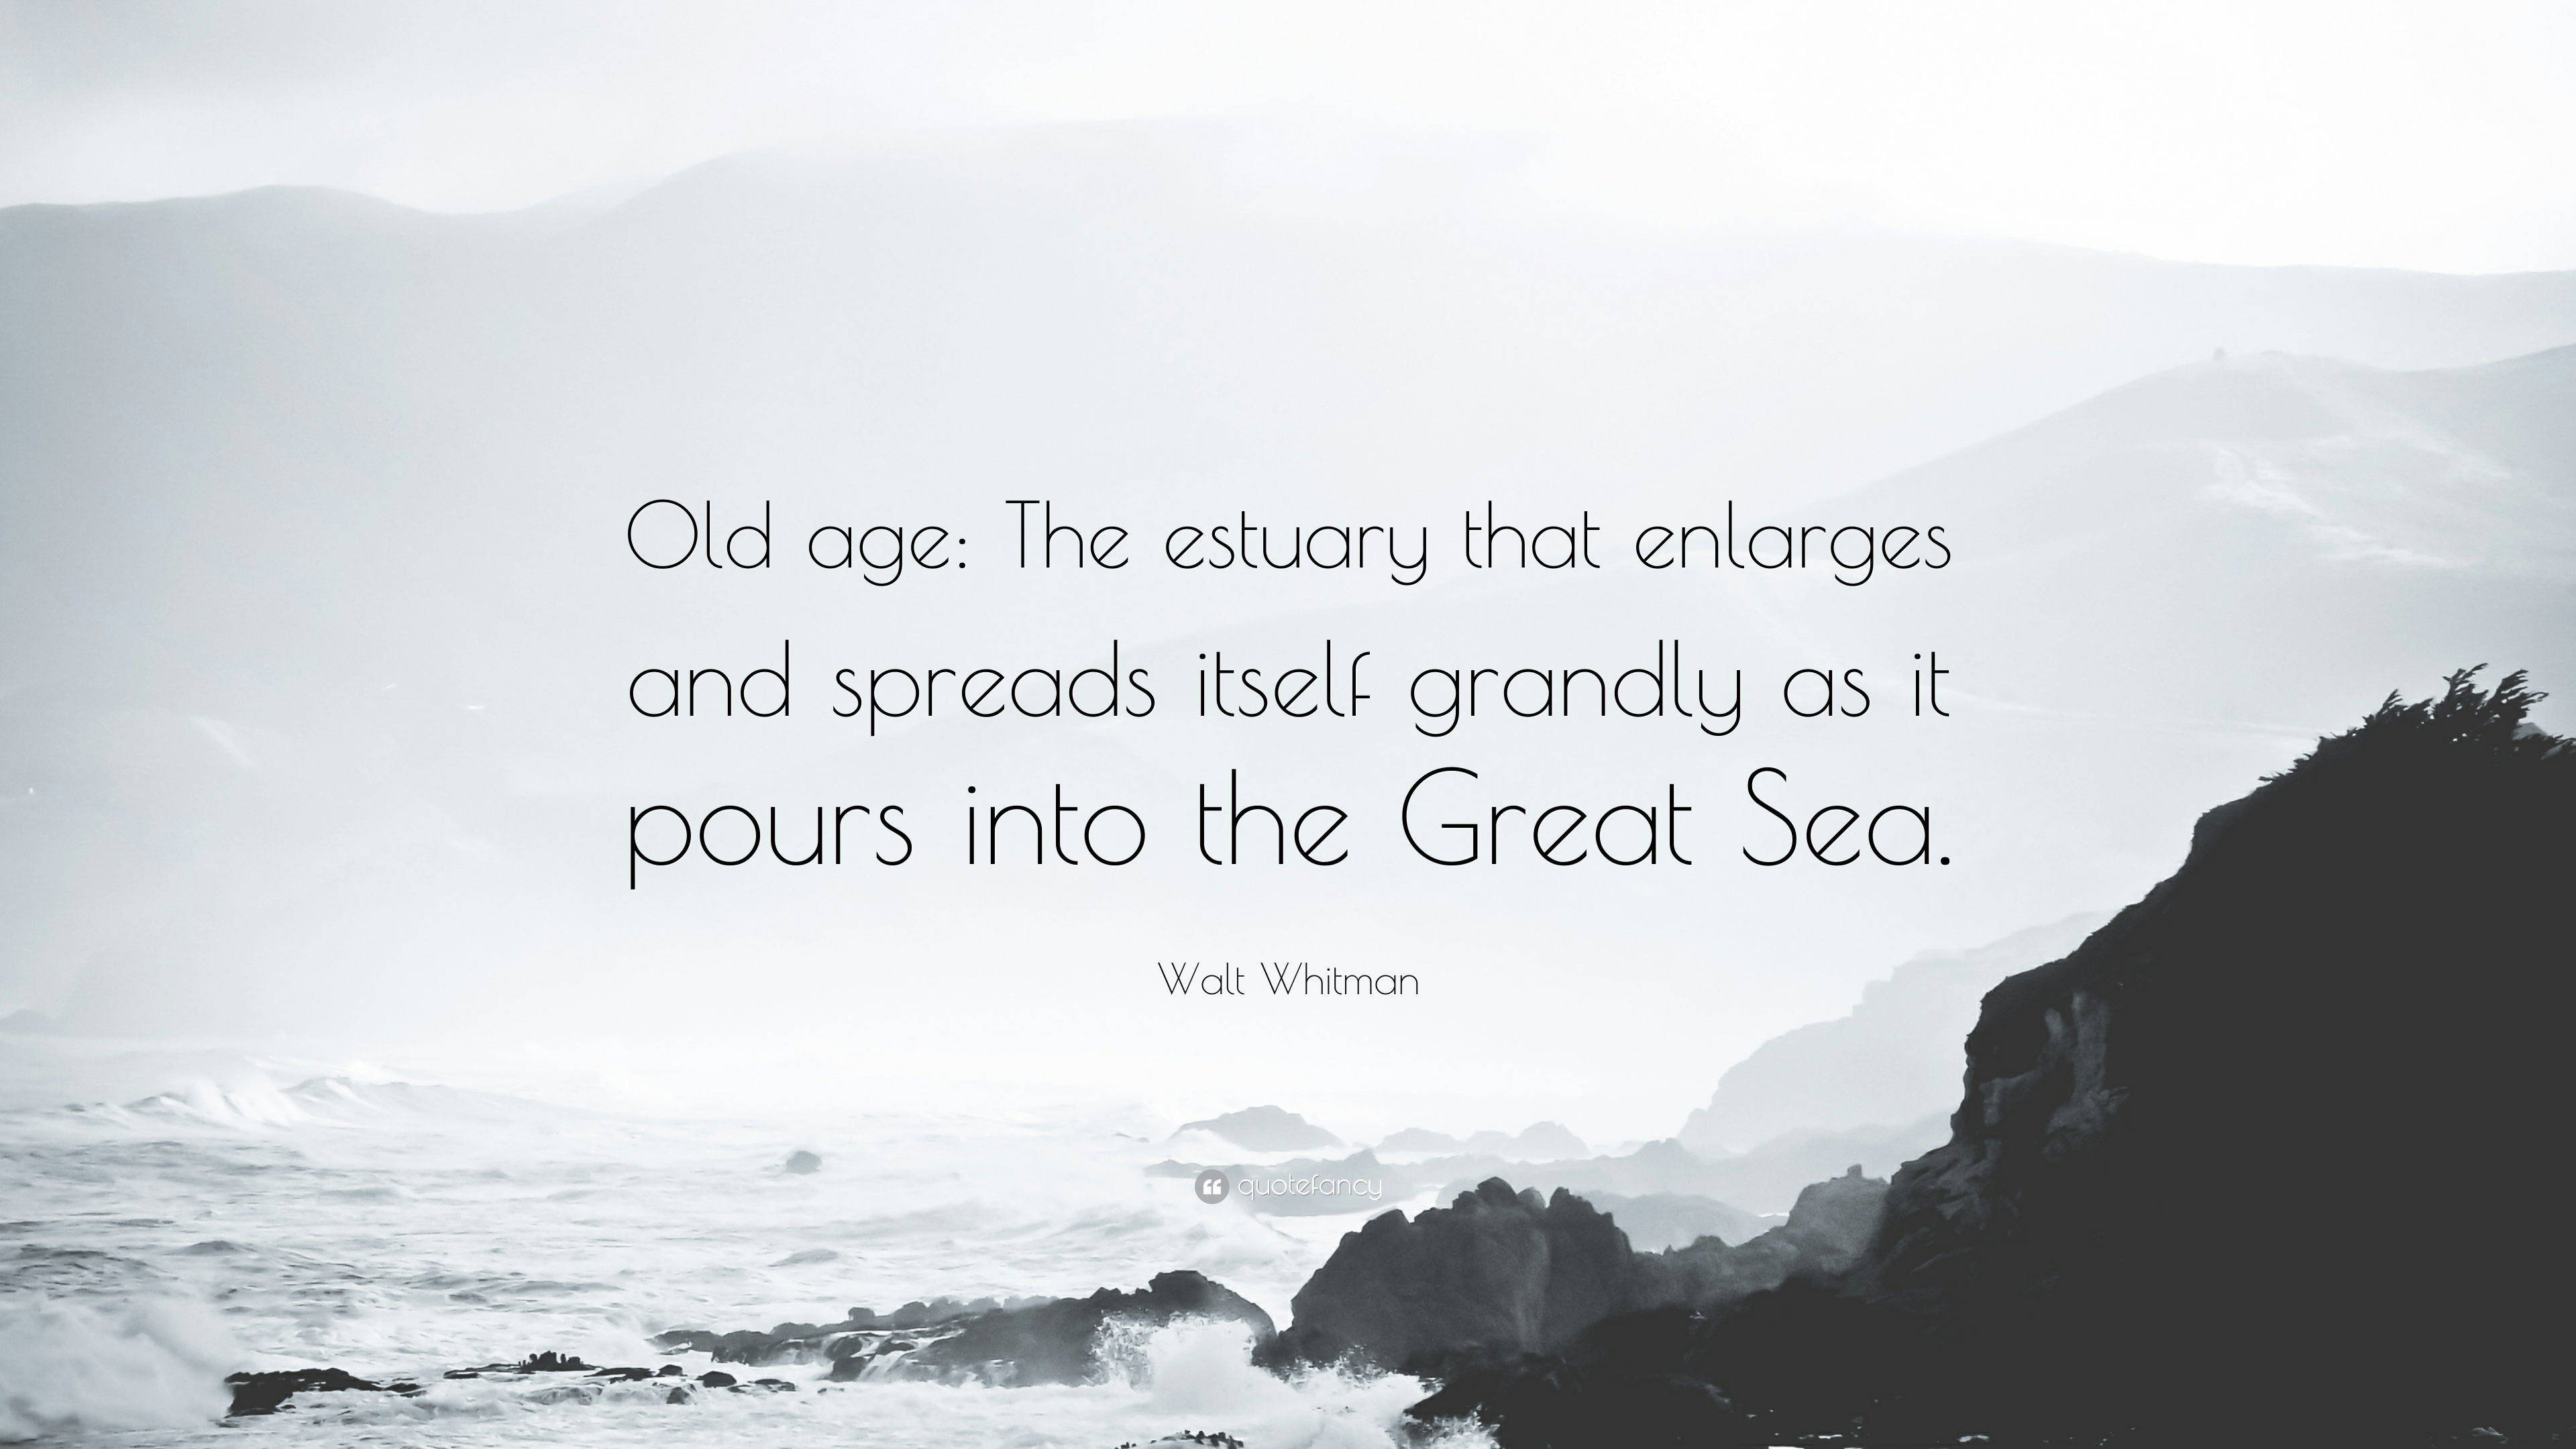 walt whitman quote old age the estuary that enlarges and spreads